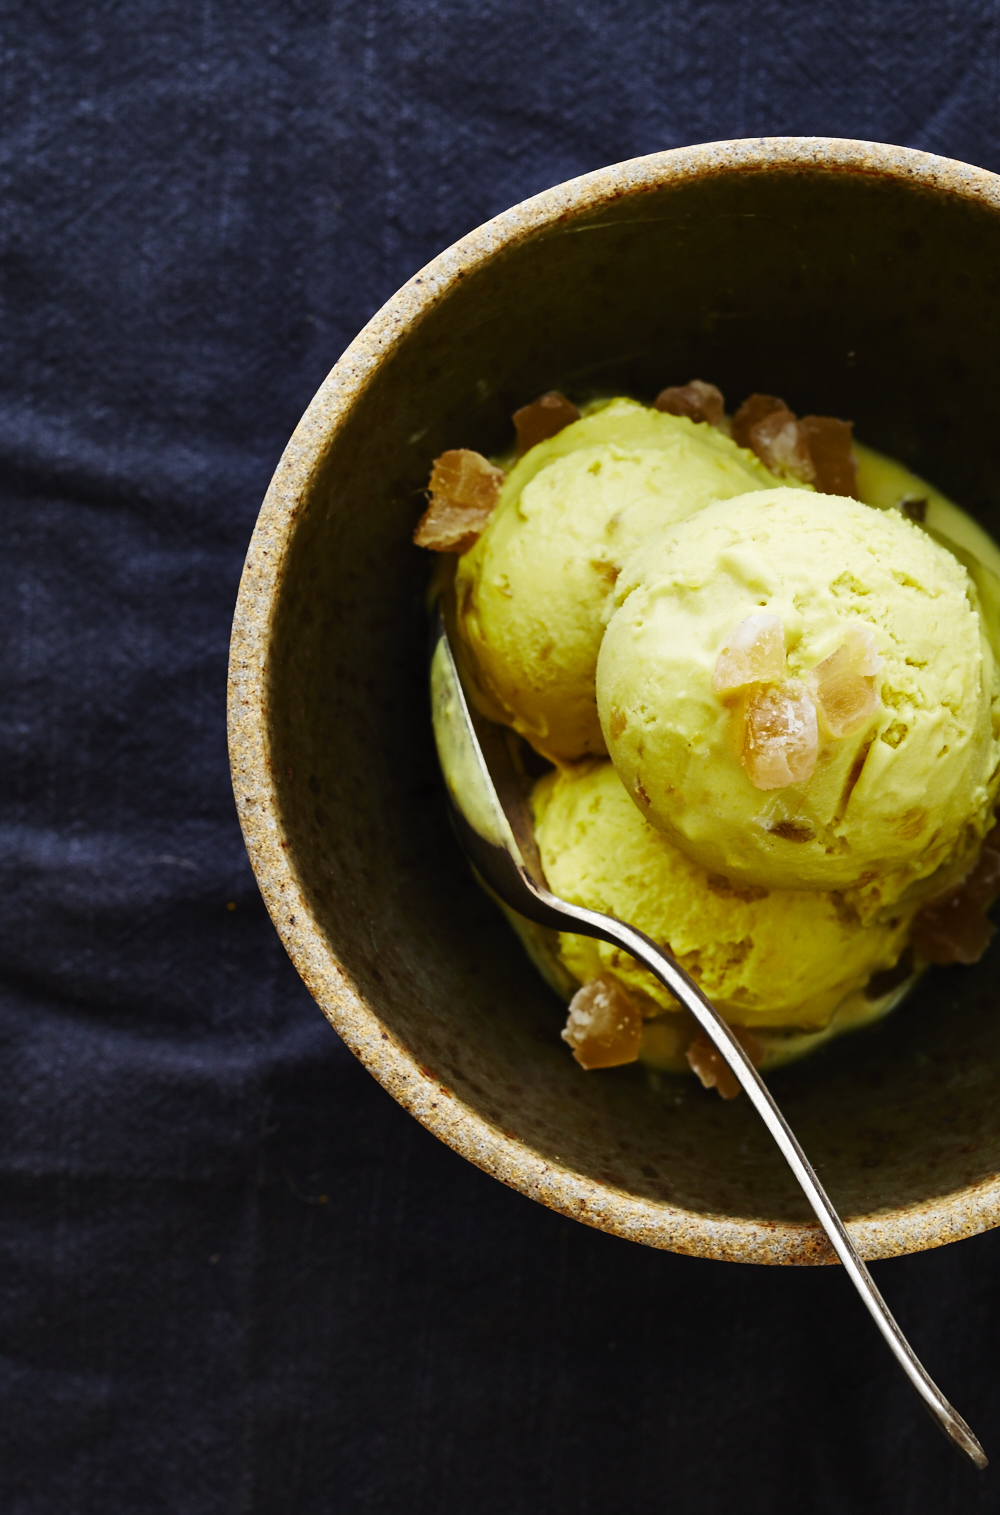 Turmeric & Candied Ginger Ice Cream (GF, V+)